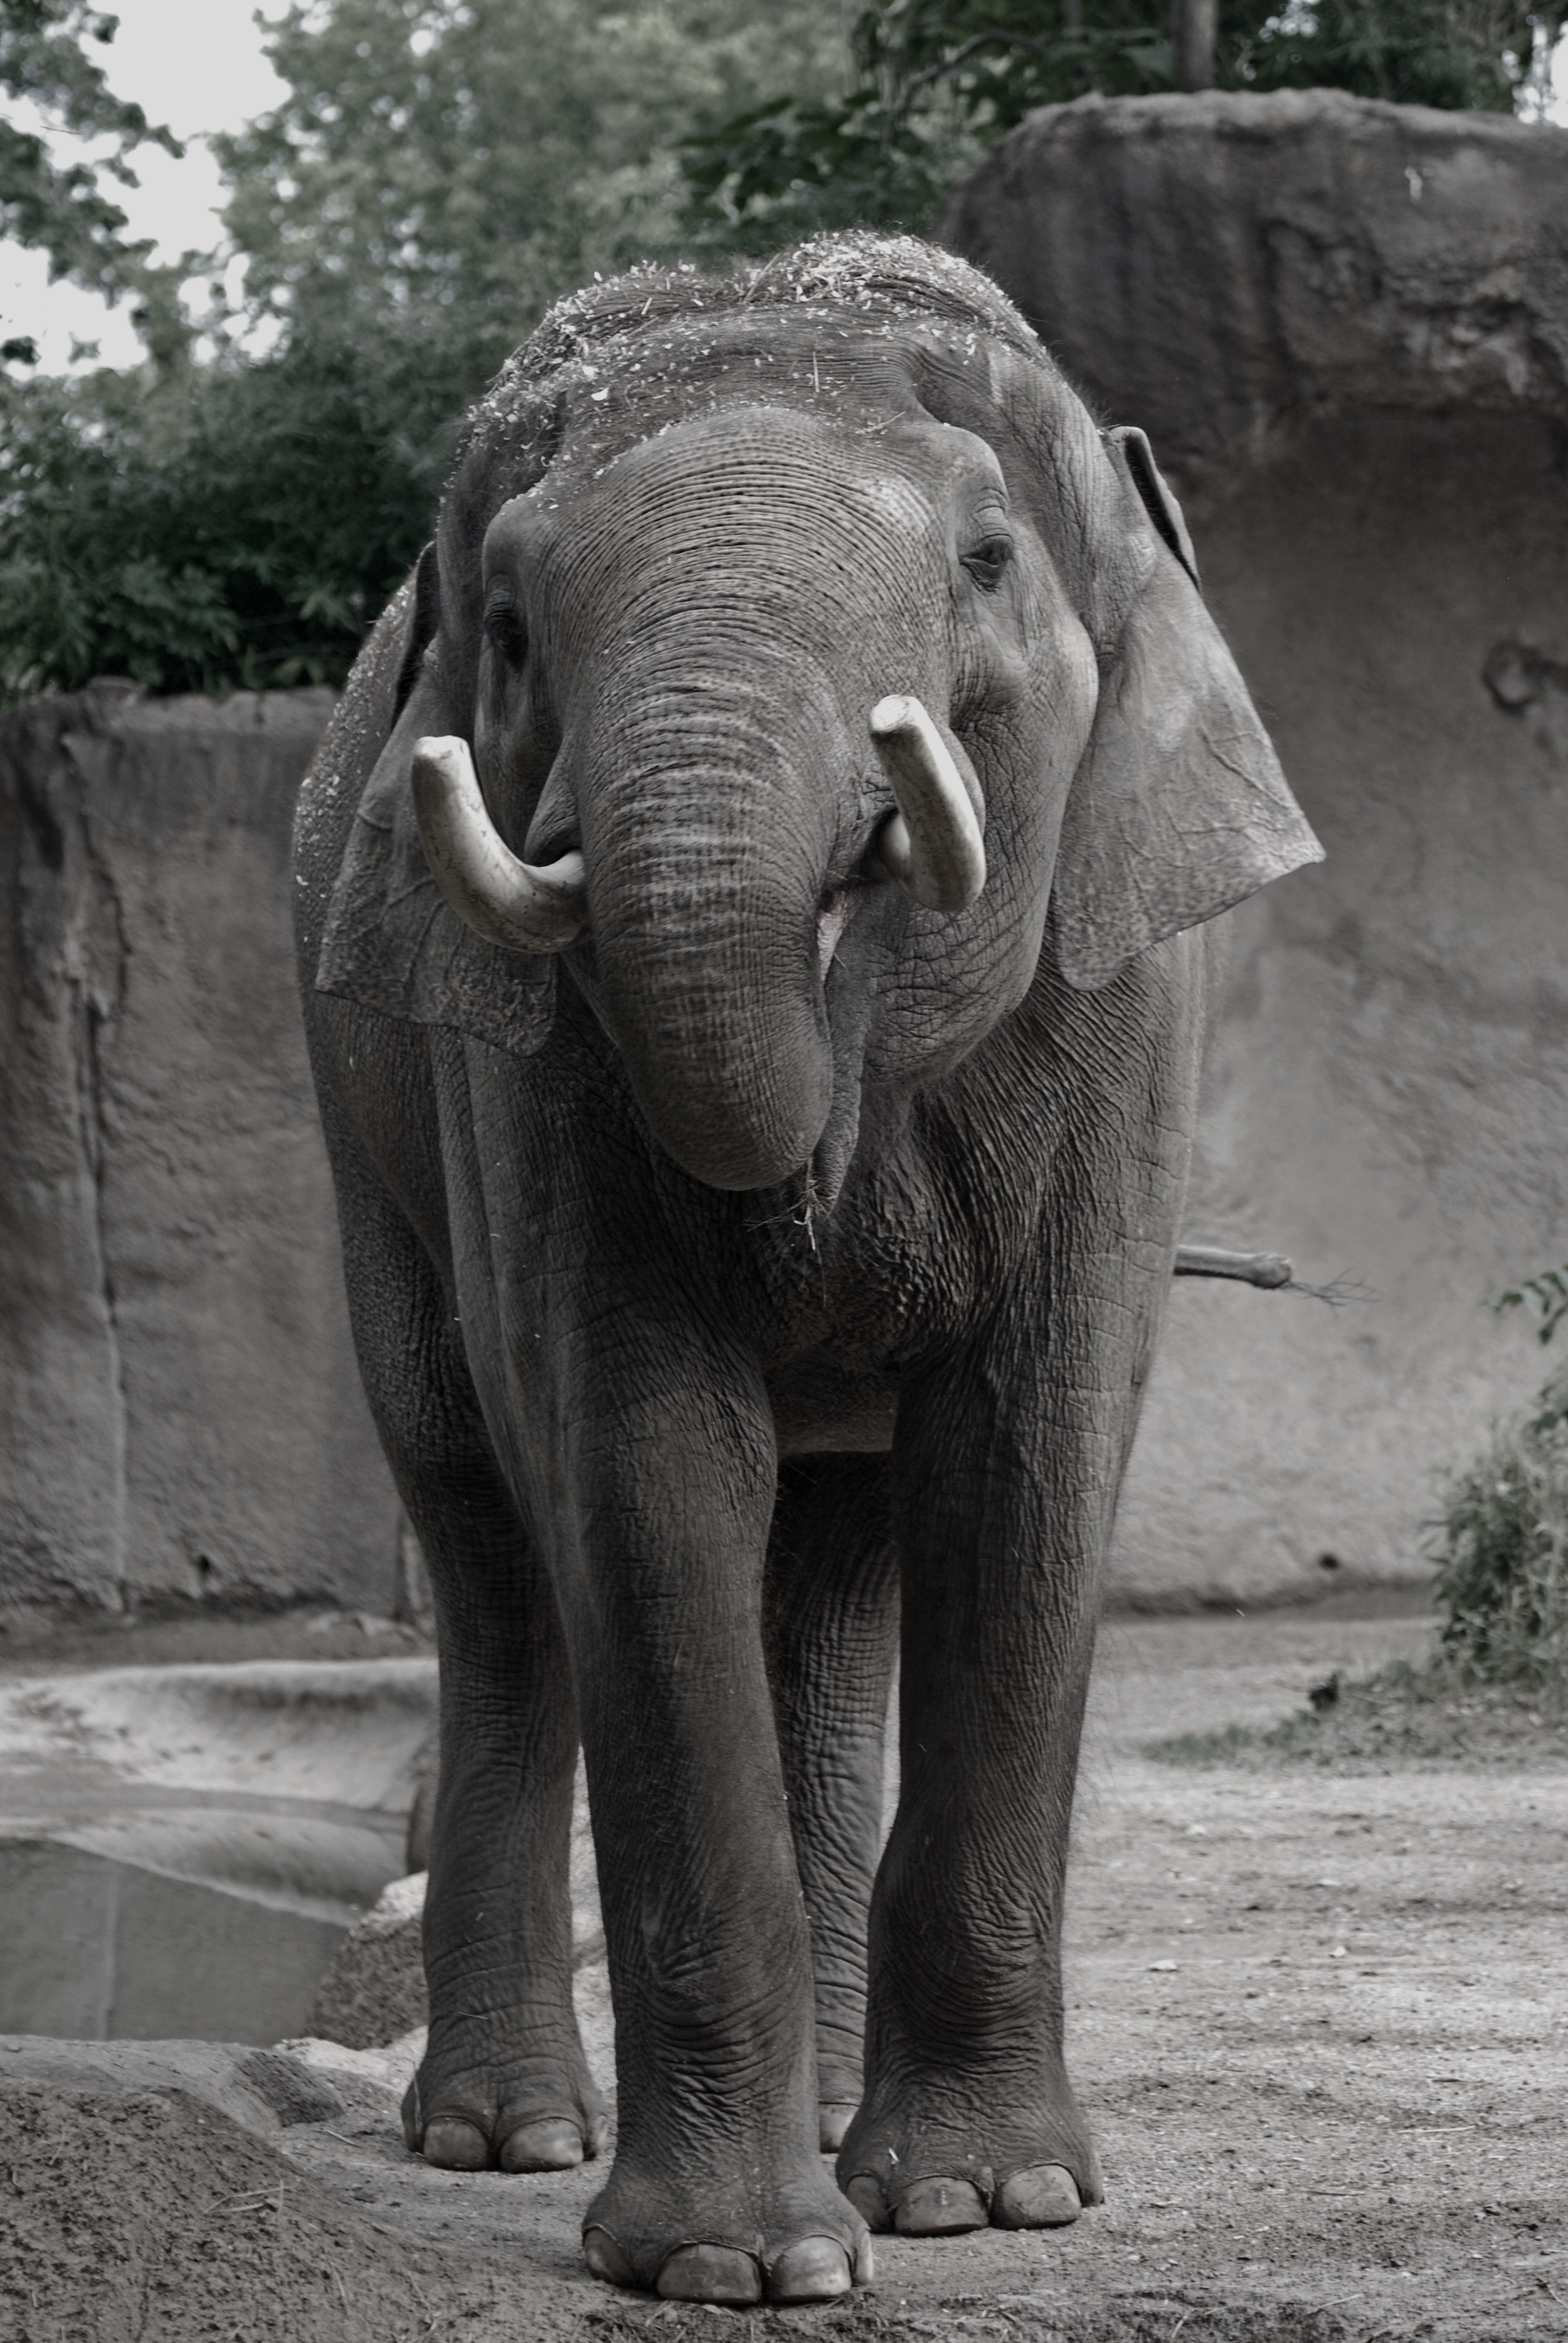 A mature male Asian elephant in a zoo, August 2015. Photo: Chase LaDue.